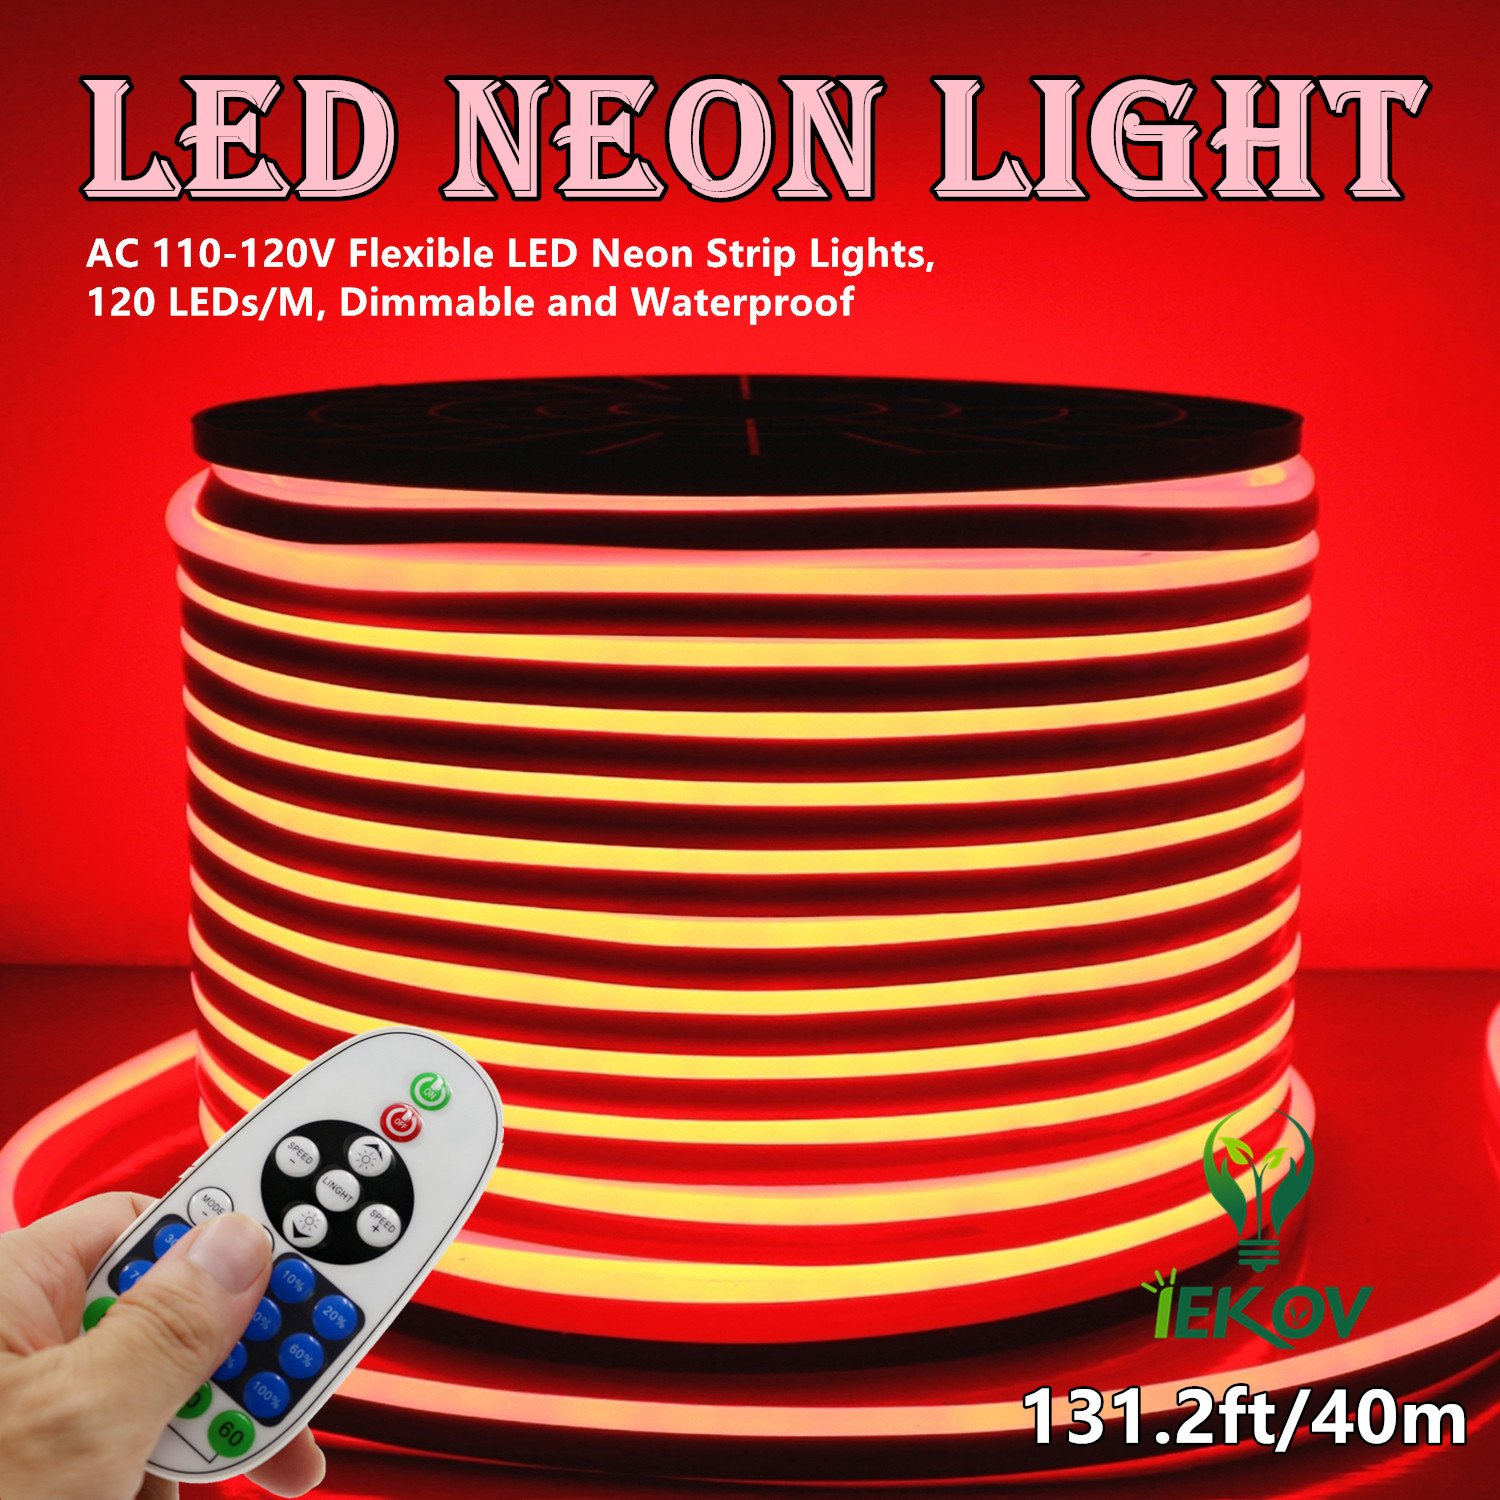 LED NEON LIGHT, IEKOV™ AC 110-120V Flexible LED Neon Strip Lights, 120 LEDs/M, Dimmable, Waterproof 2835 SMD LED Rope Light + Remote Controller for Home Decoration (131.2ft/40m, Red) by IEKOV (Image #2)